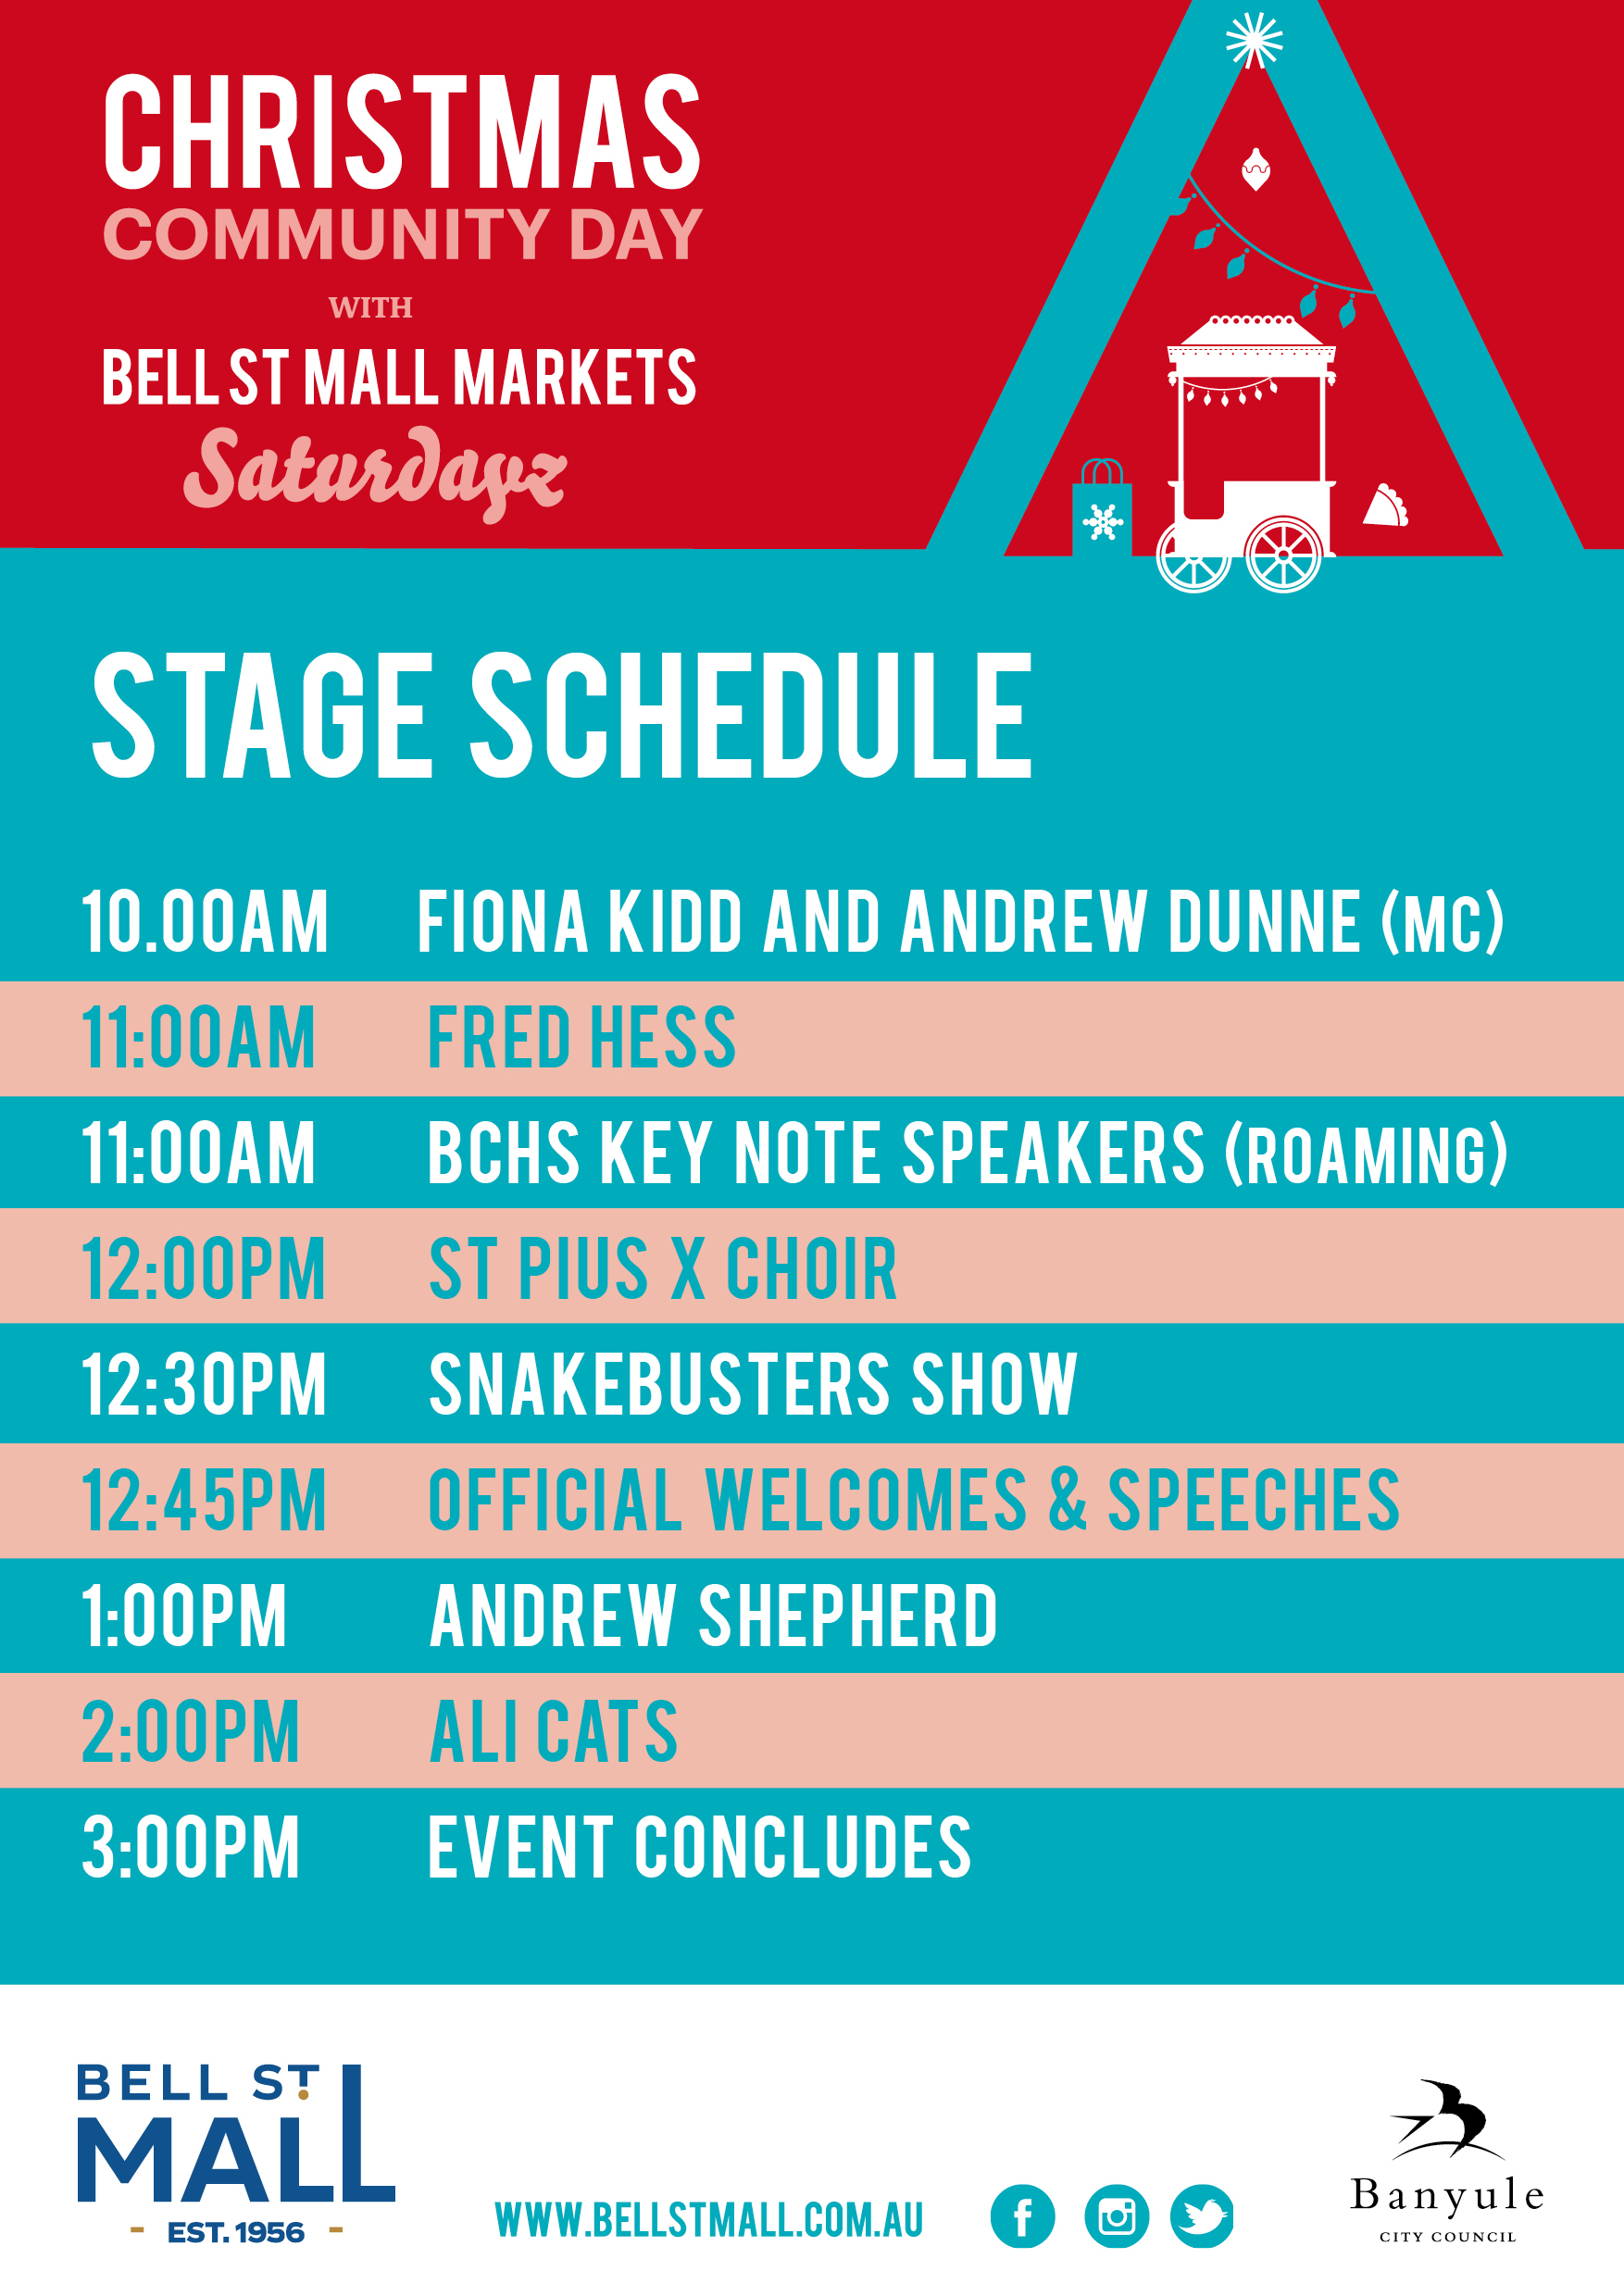 Bell St Mall Christmas Community Day